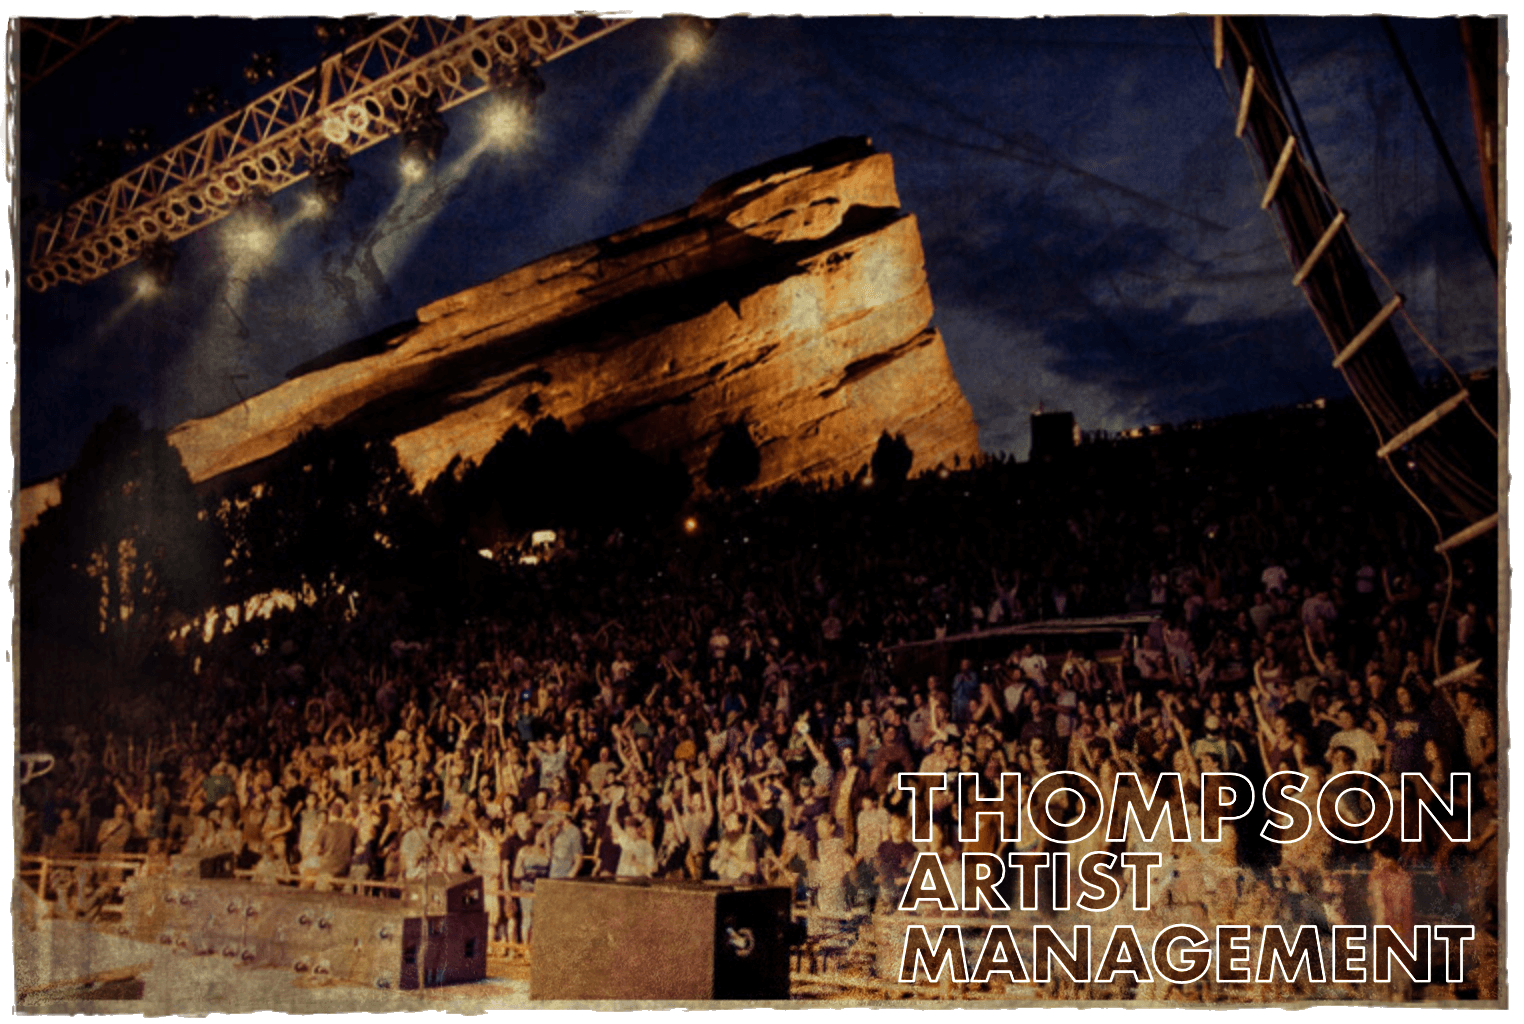 A dramatic nighttime stage view photo of a concert crowd.